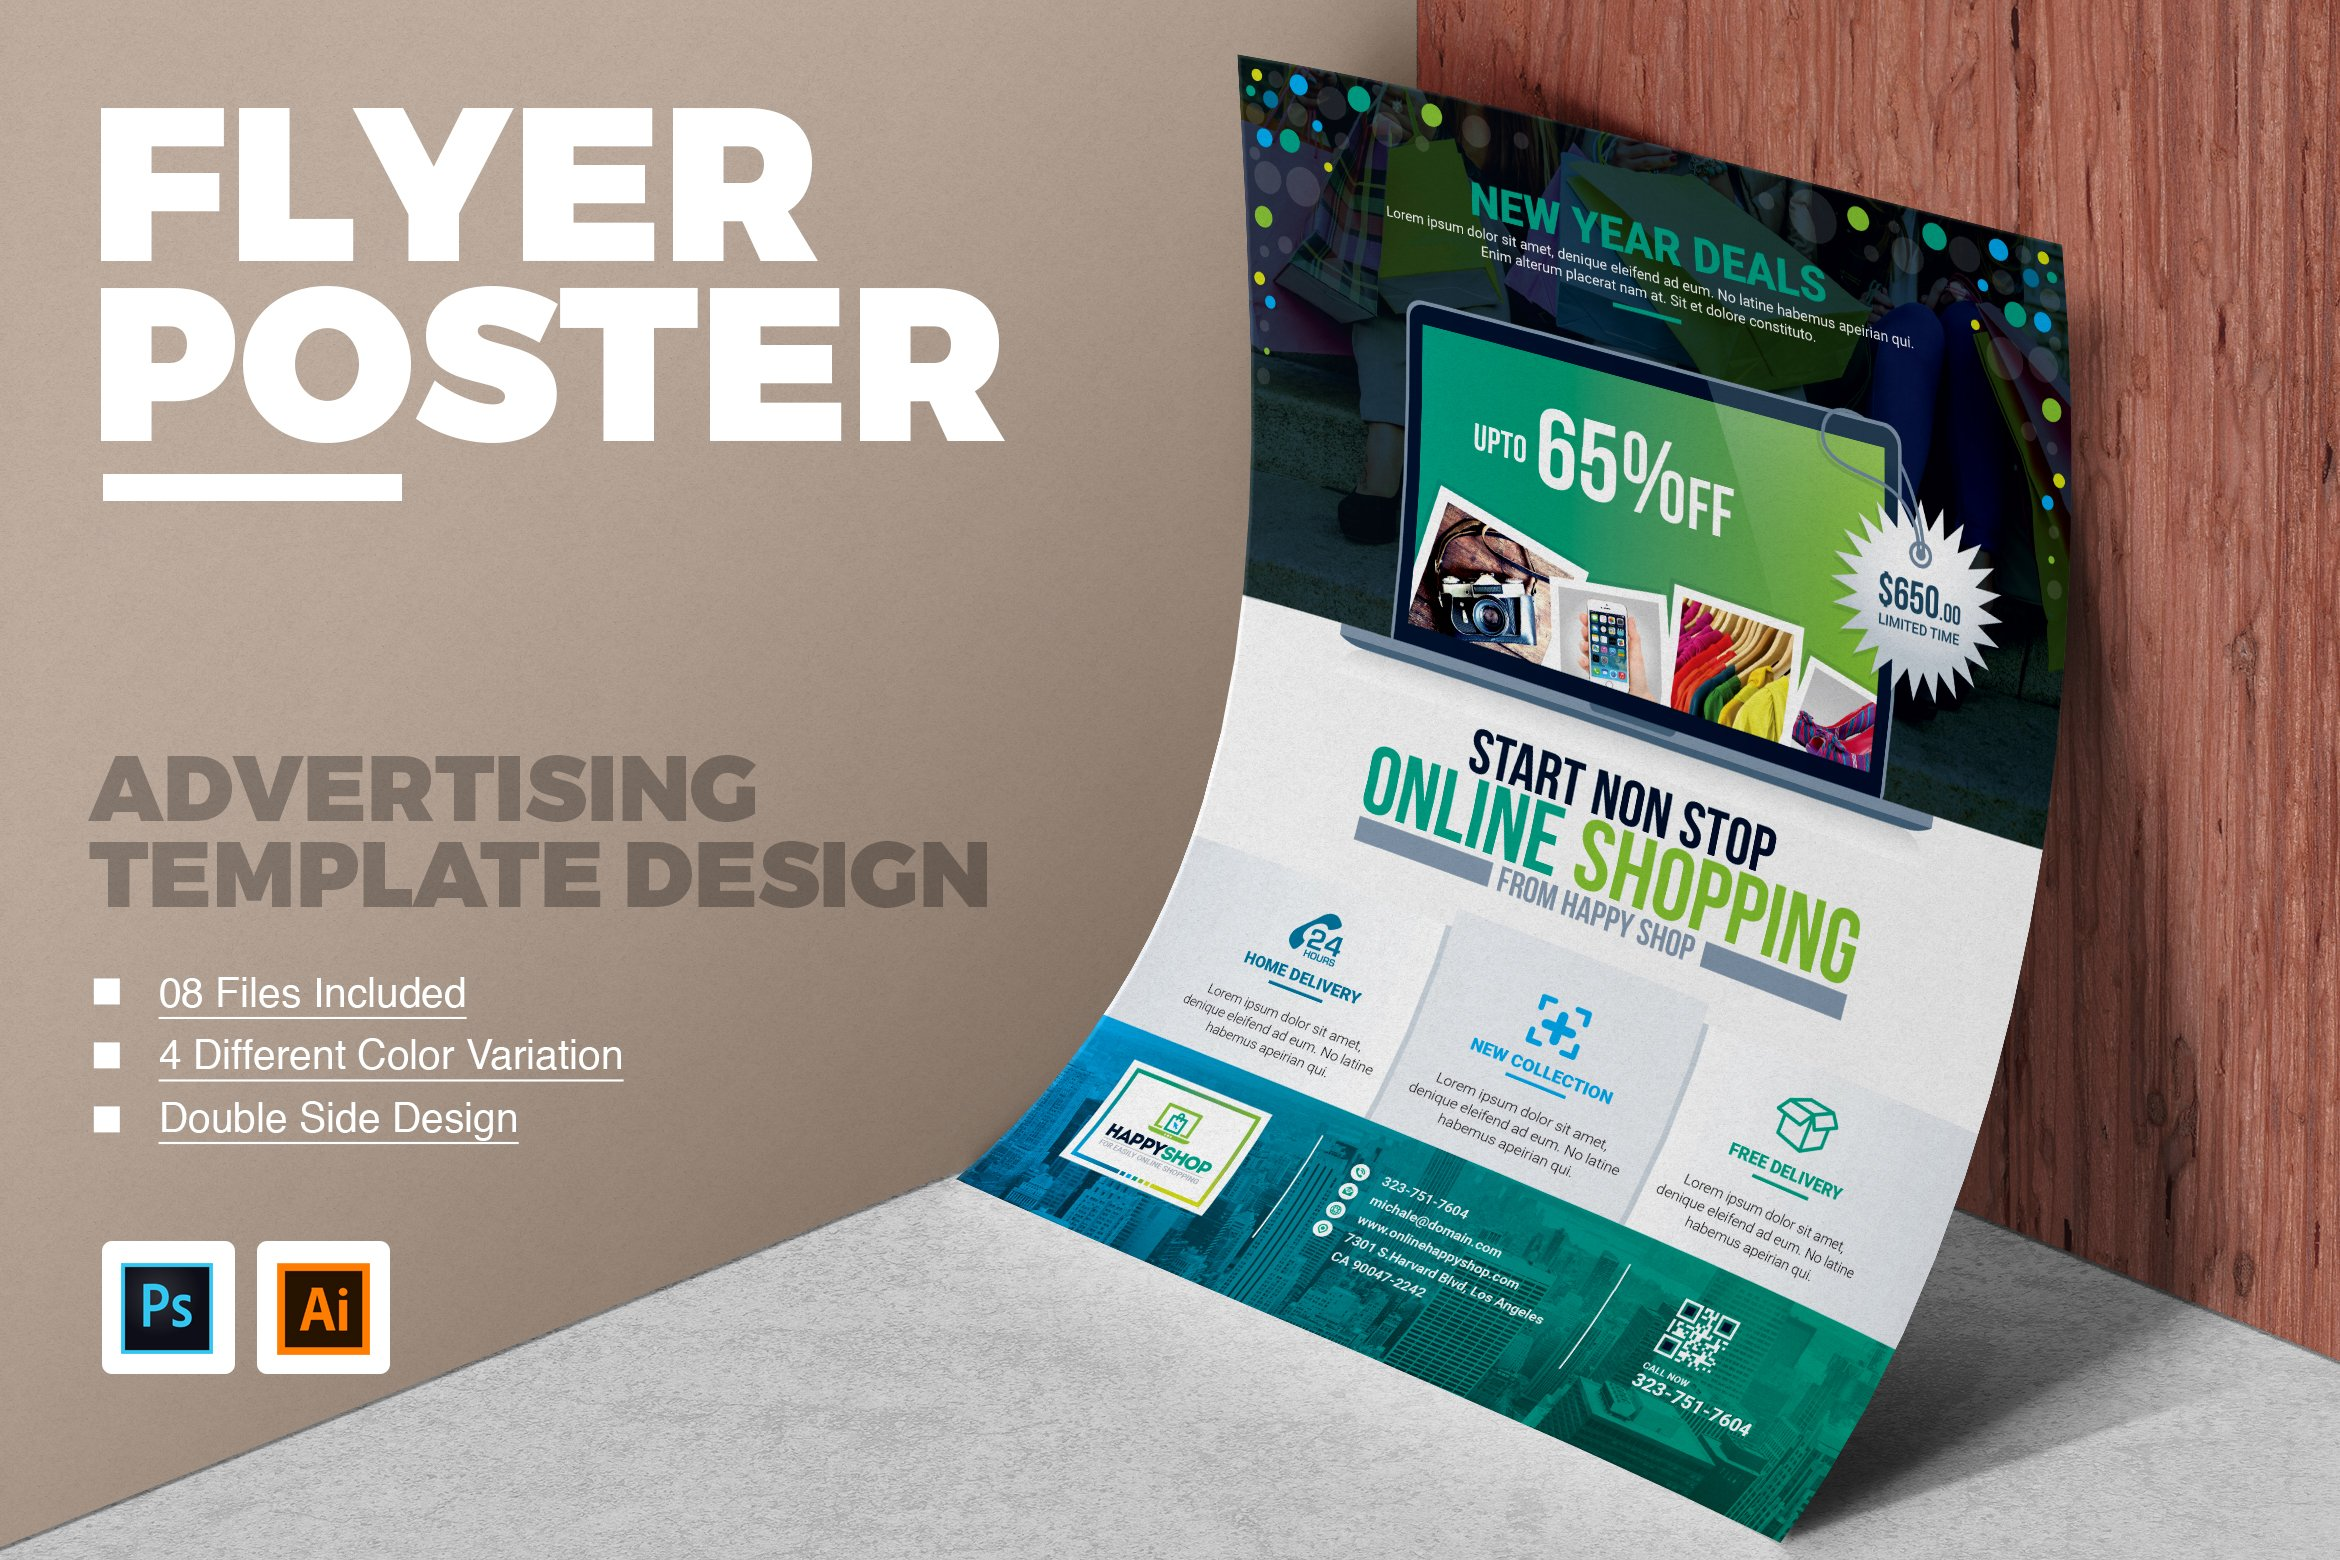 Product Promotional Flyer-Poster | Creative Illustrator ...